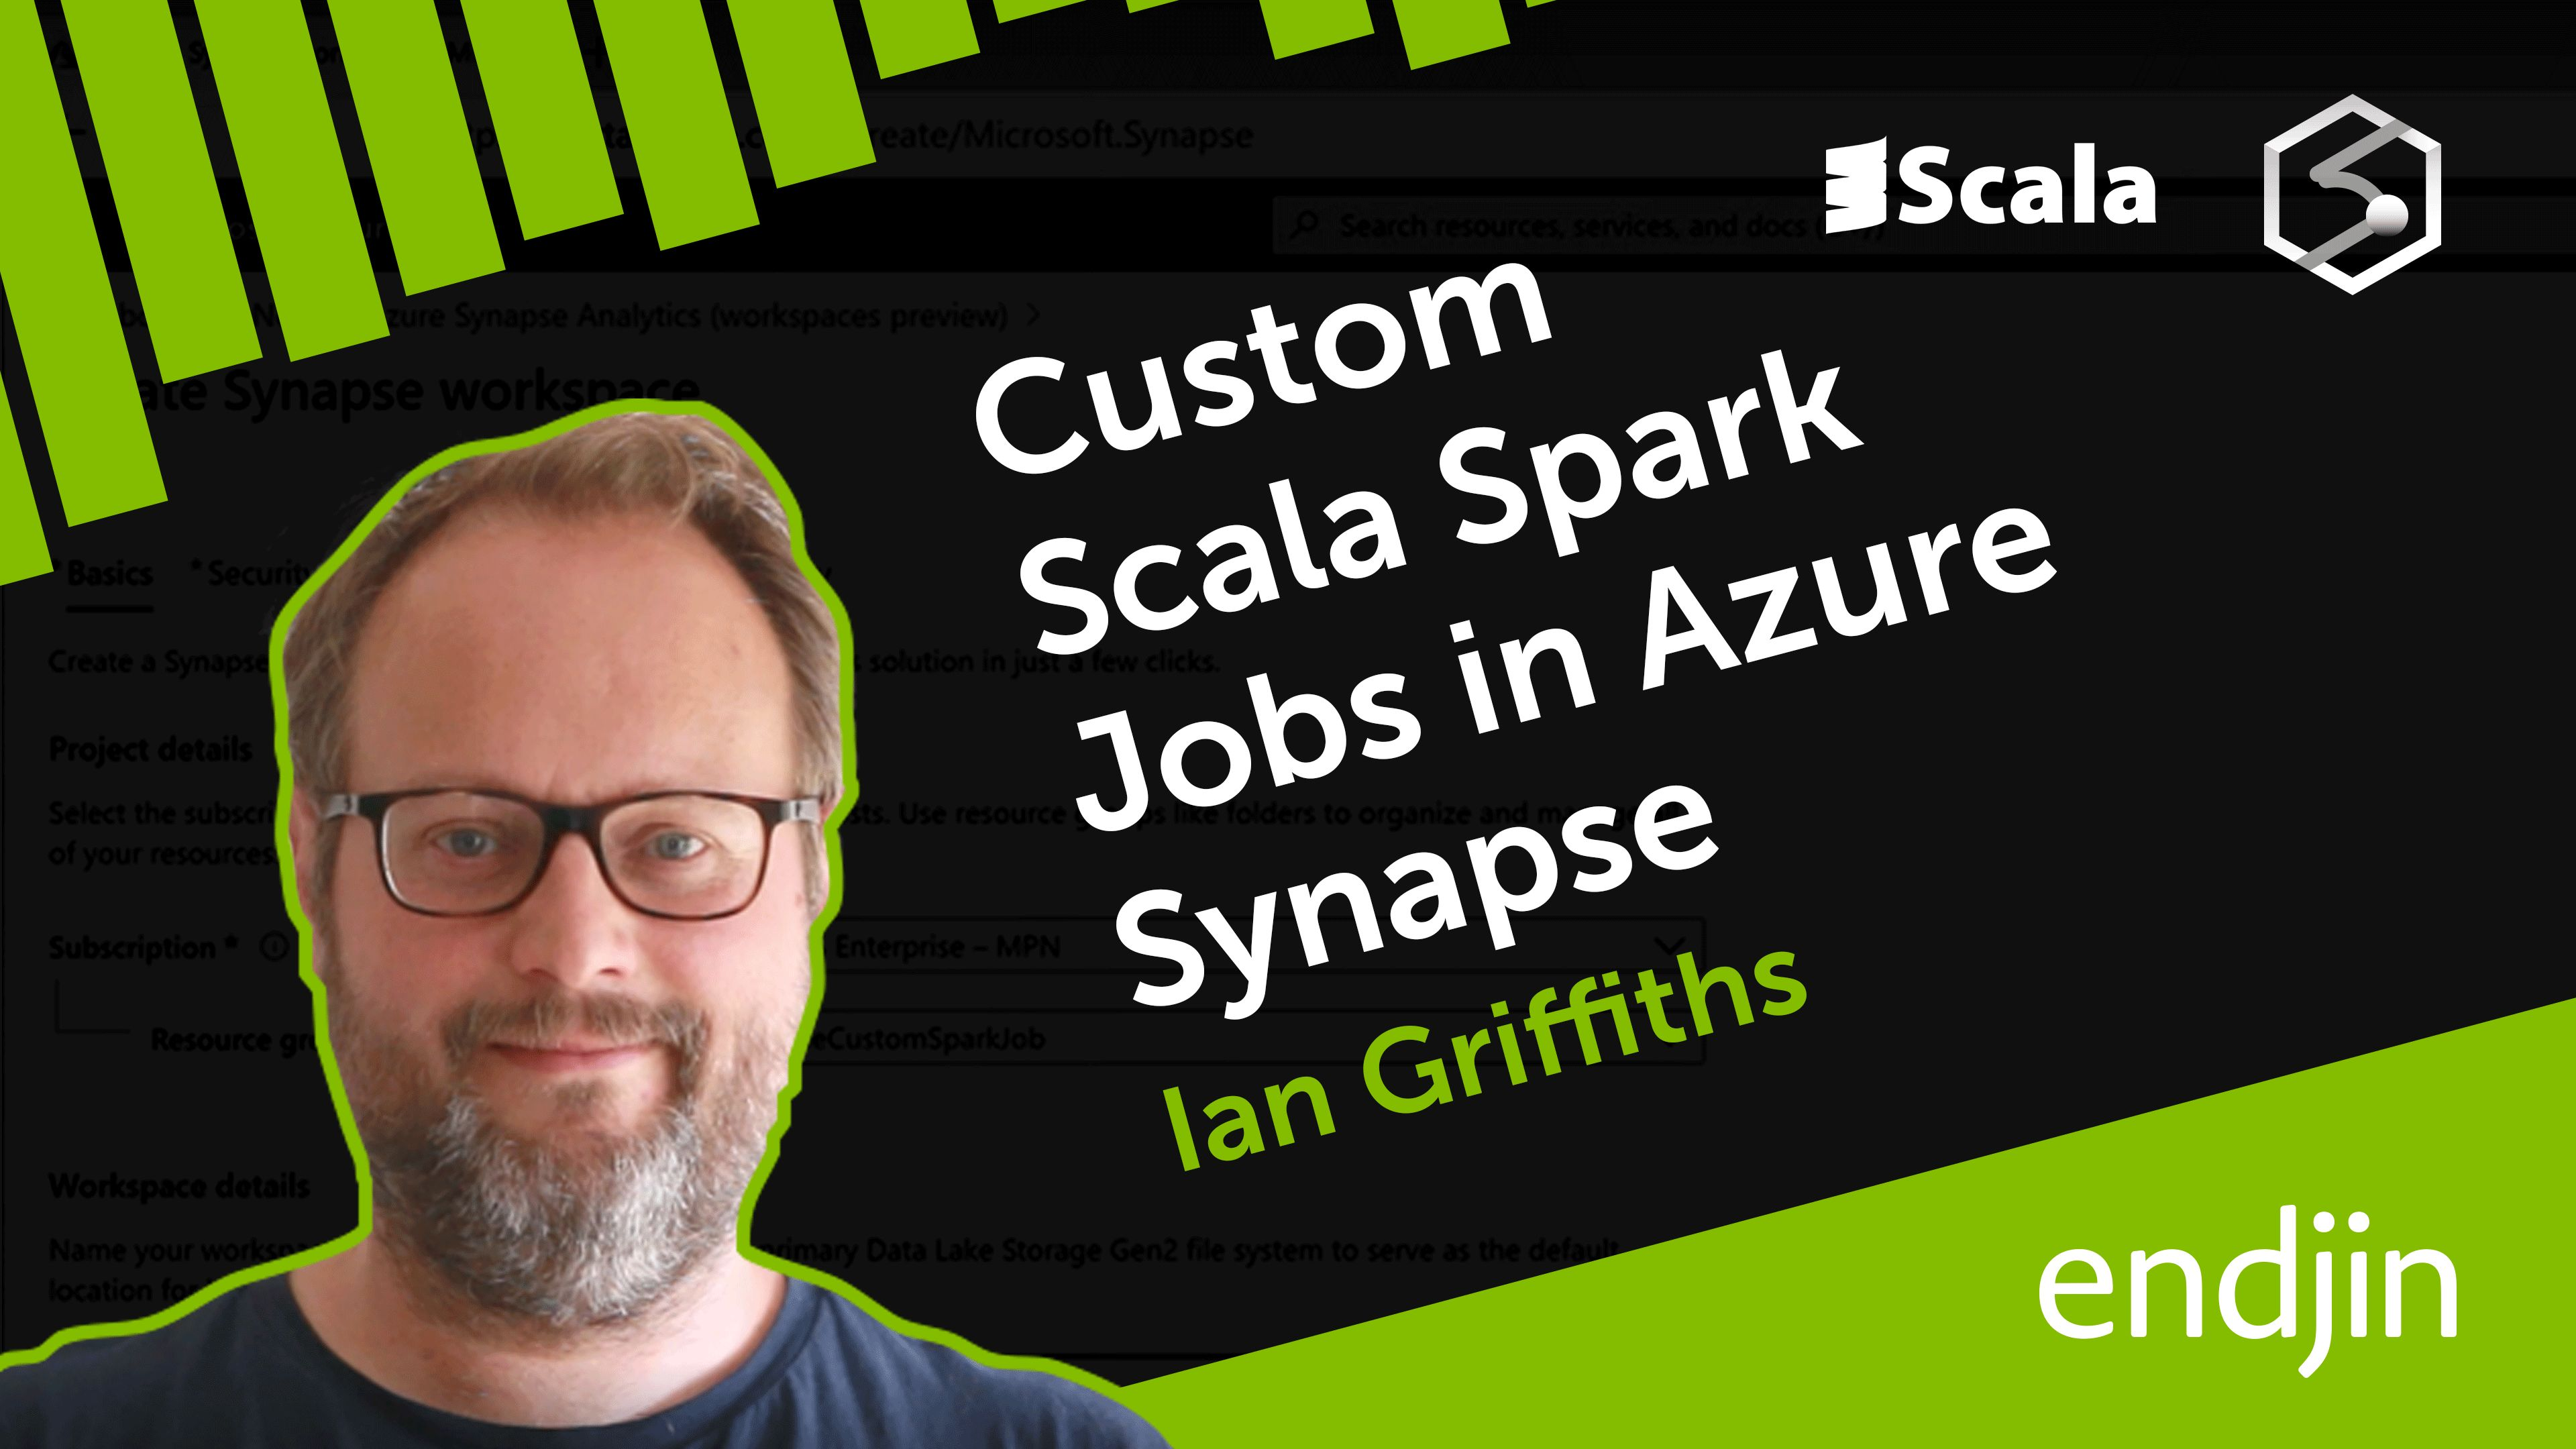 Custom Scala Spark Jobs in Azure Synapse